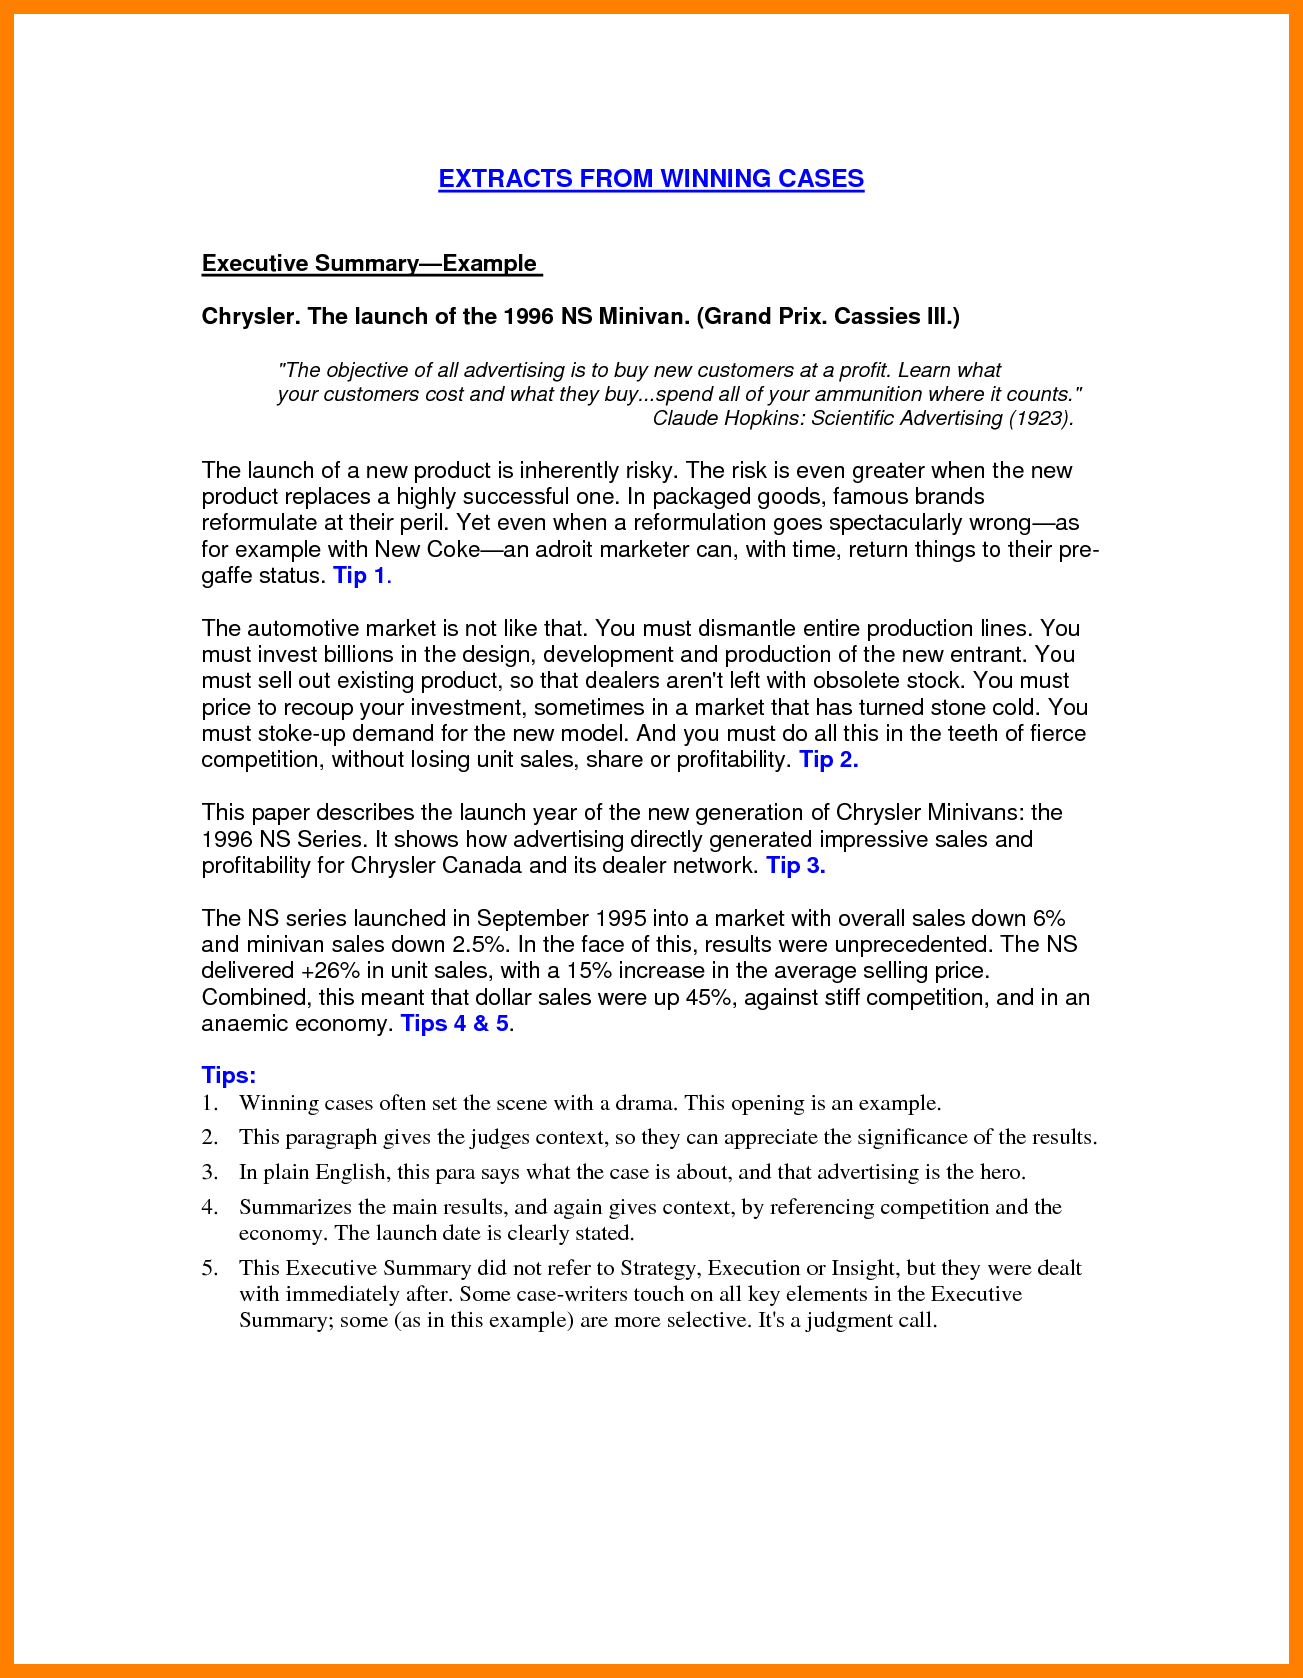 011 Executive Summary Examples How To Write Good Resume Proposal